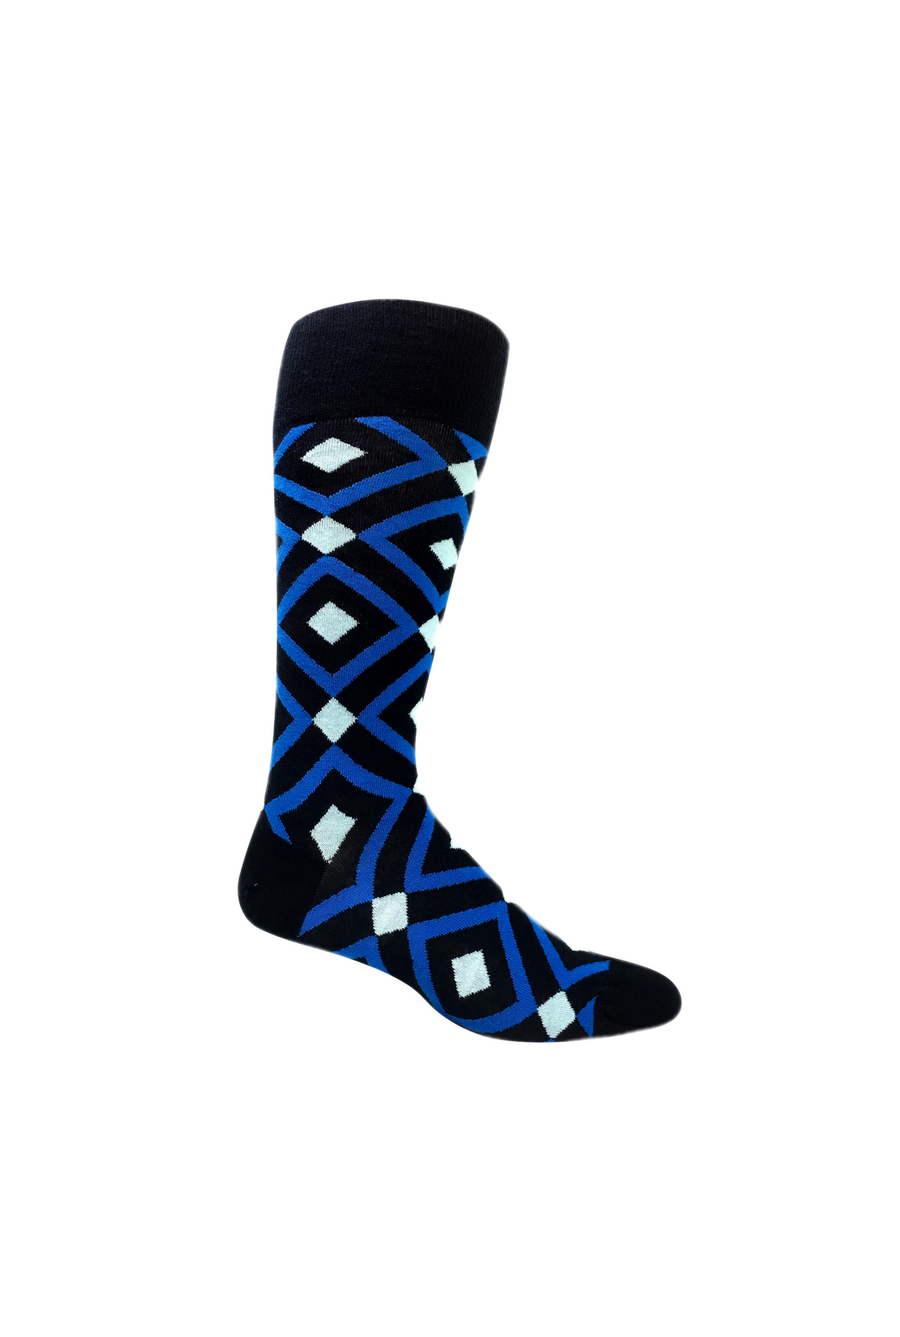 Groomsmen Socks Set - 6 Premium organic cotton blue argyle men's dress socks